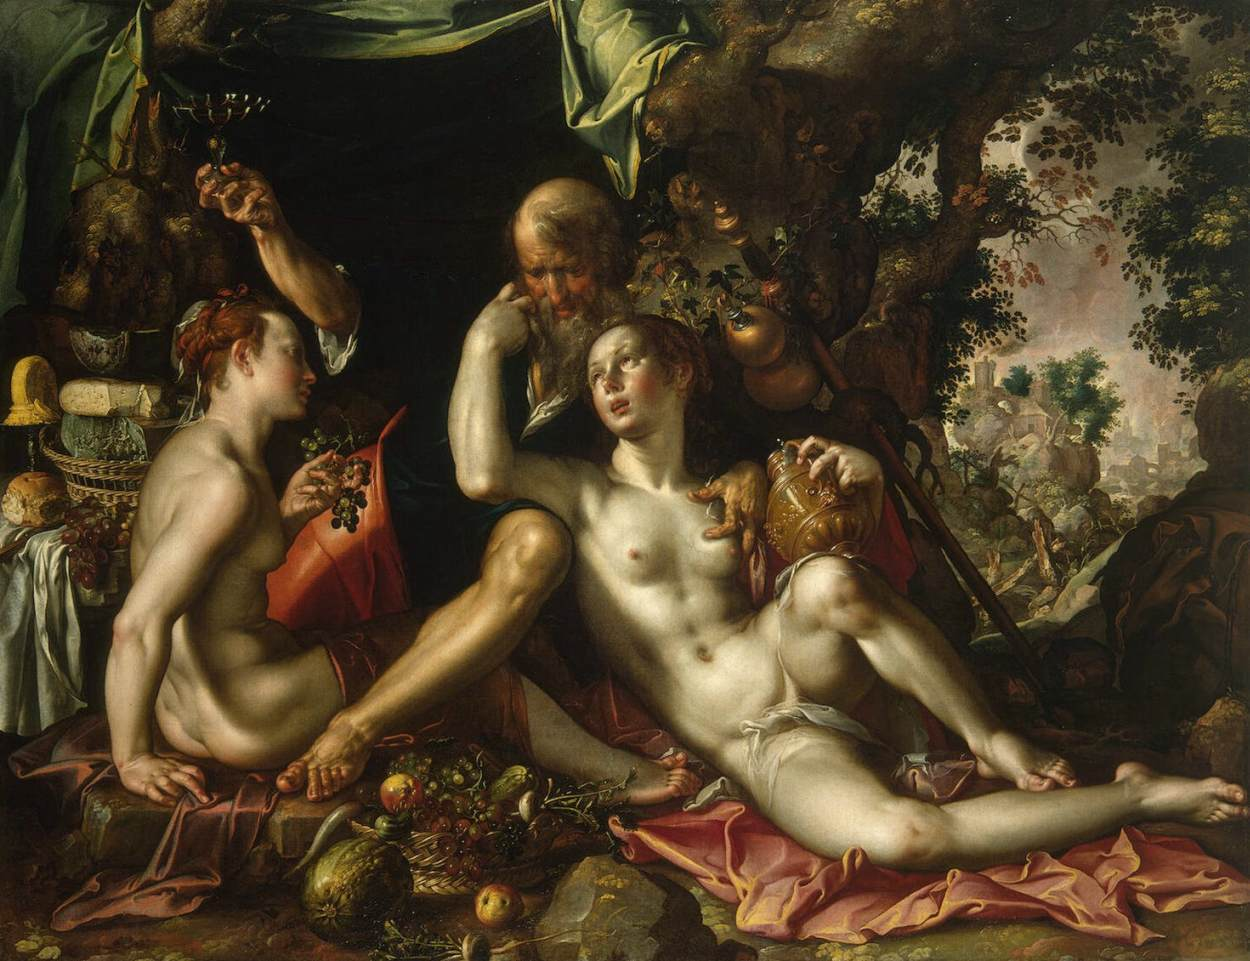 http://uploads7.wikipaintings.org/images/joachim-wtewael/lot-and-his-daughters.jpg